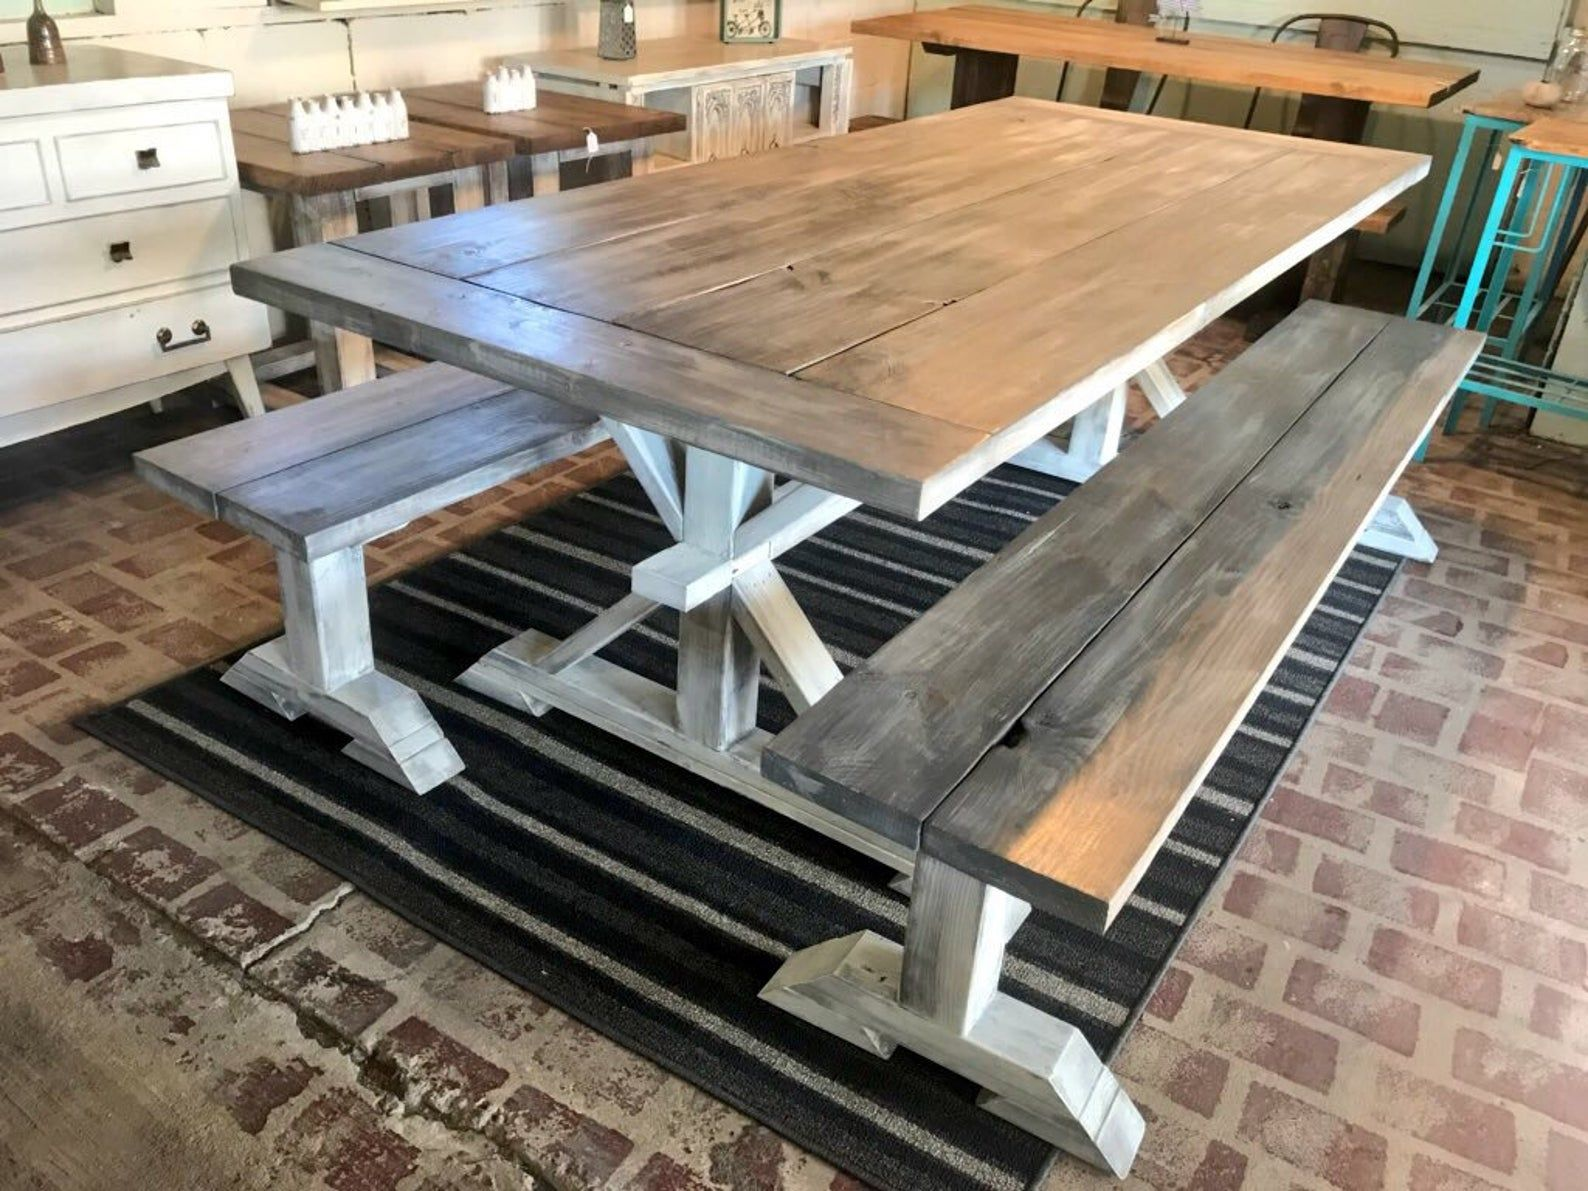 7ft Rustic Farmhouse Table Set With Long Benches And Etsy In 2020 Farmhouse Table Setting Rustic Farmhouse Table Wooden Dining Set